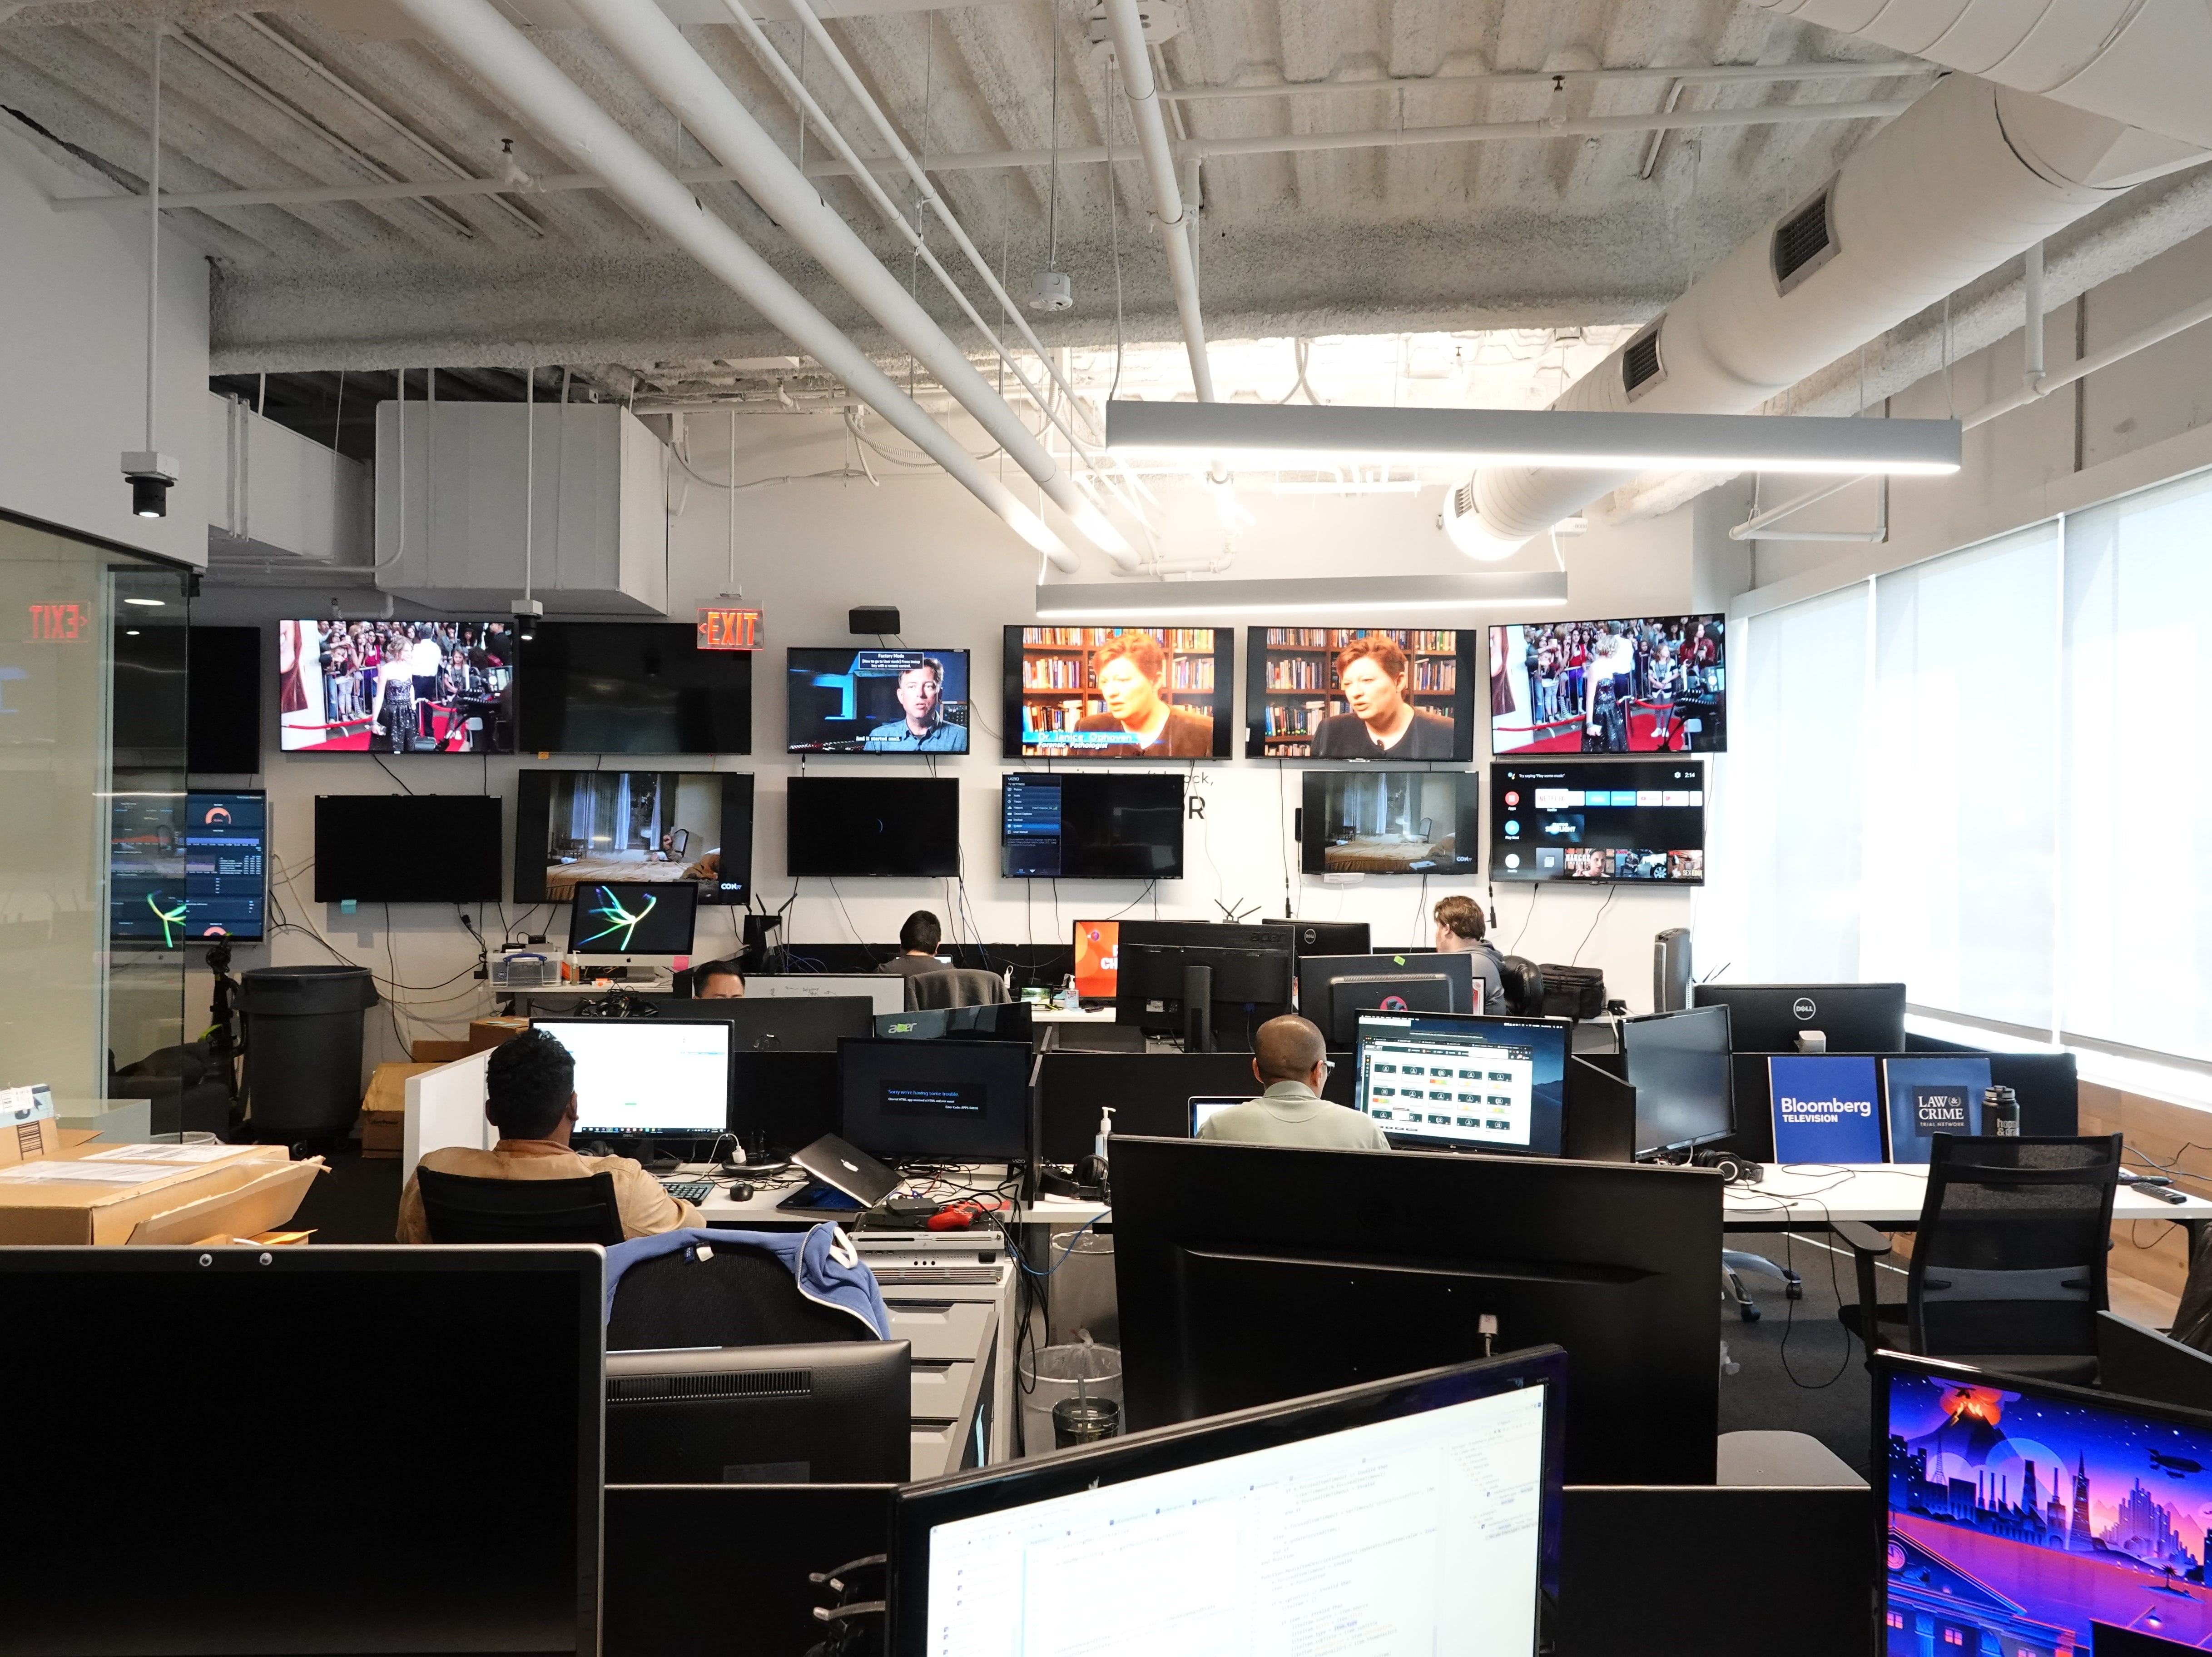 TVs flank the walls at Pluto.TV's headquarters in West Hollywood.